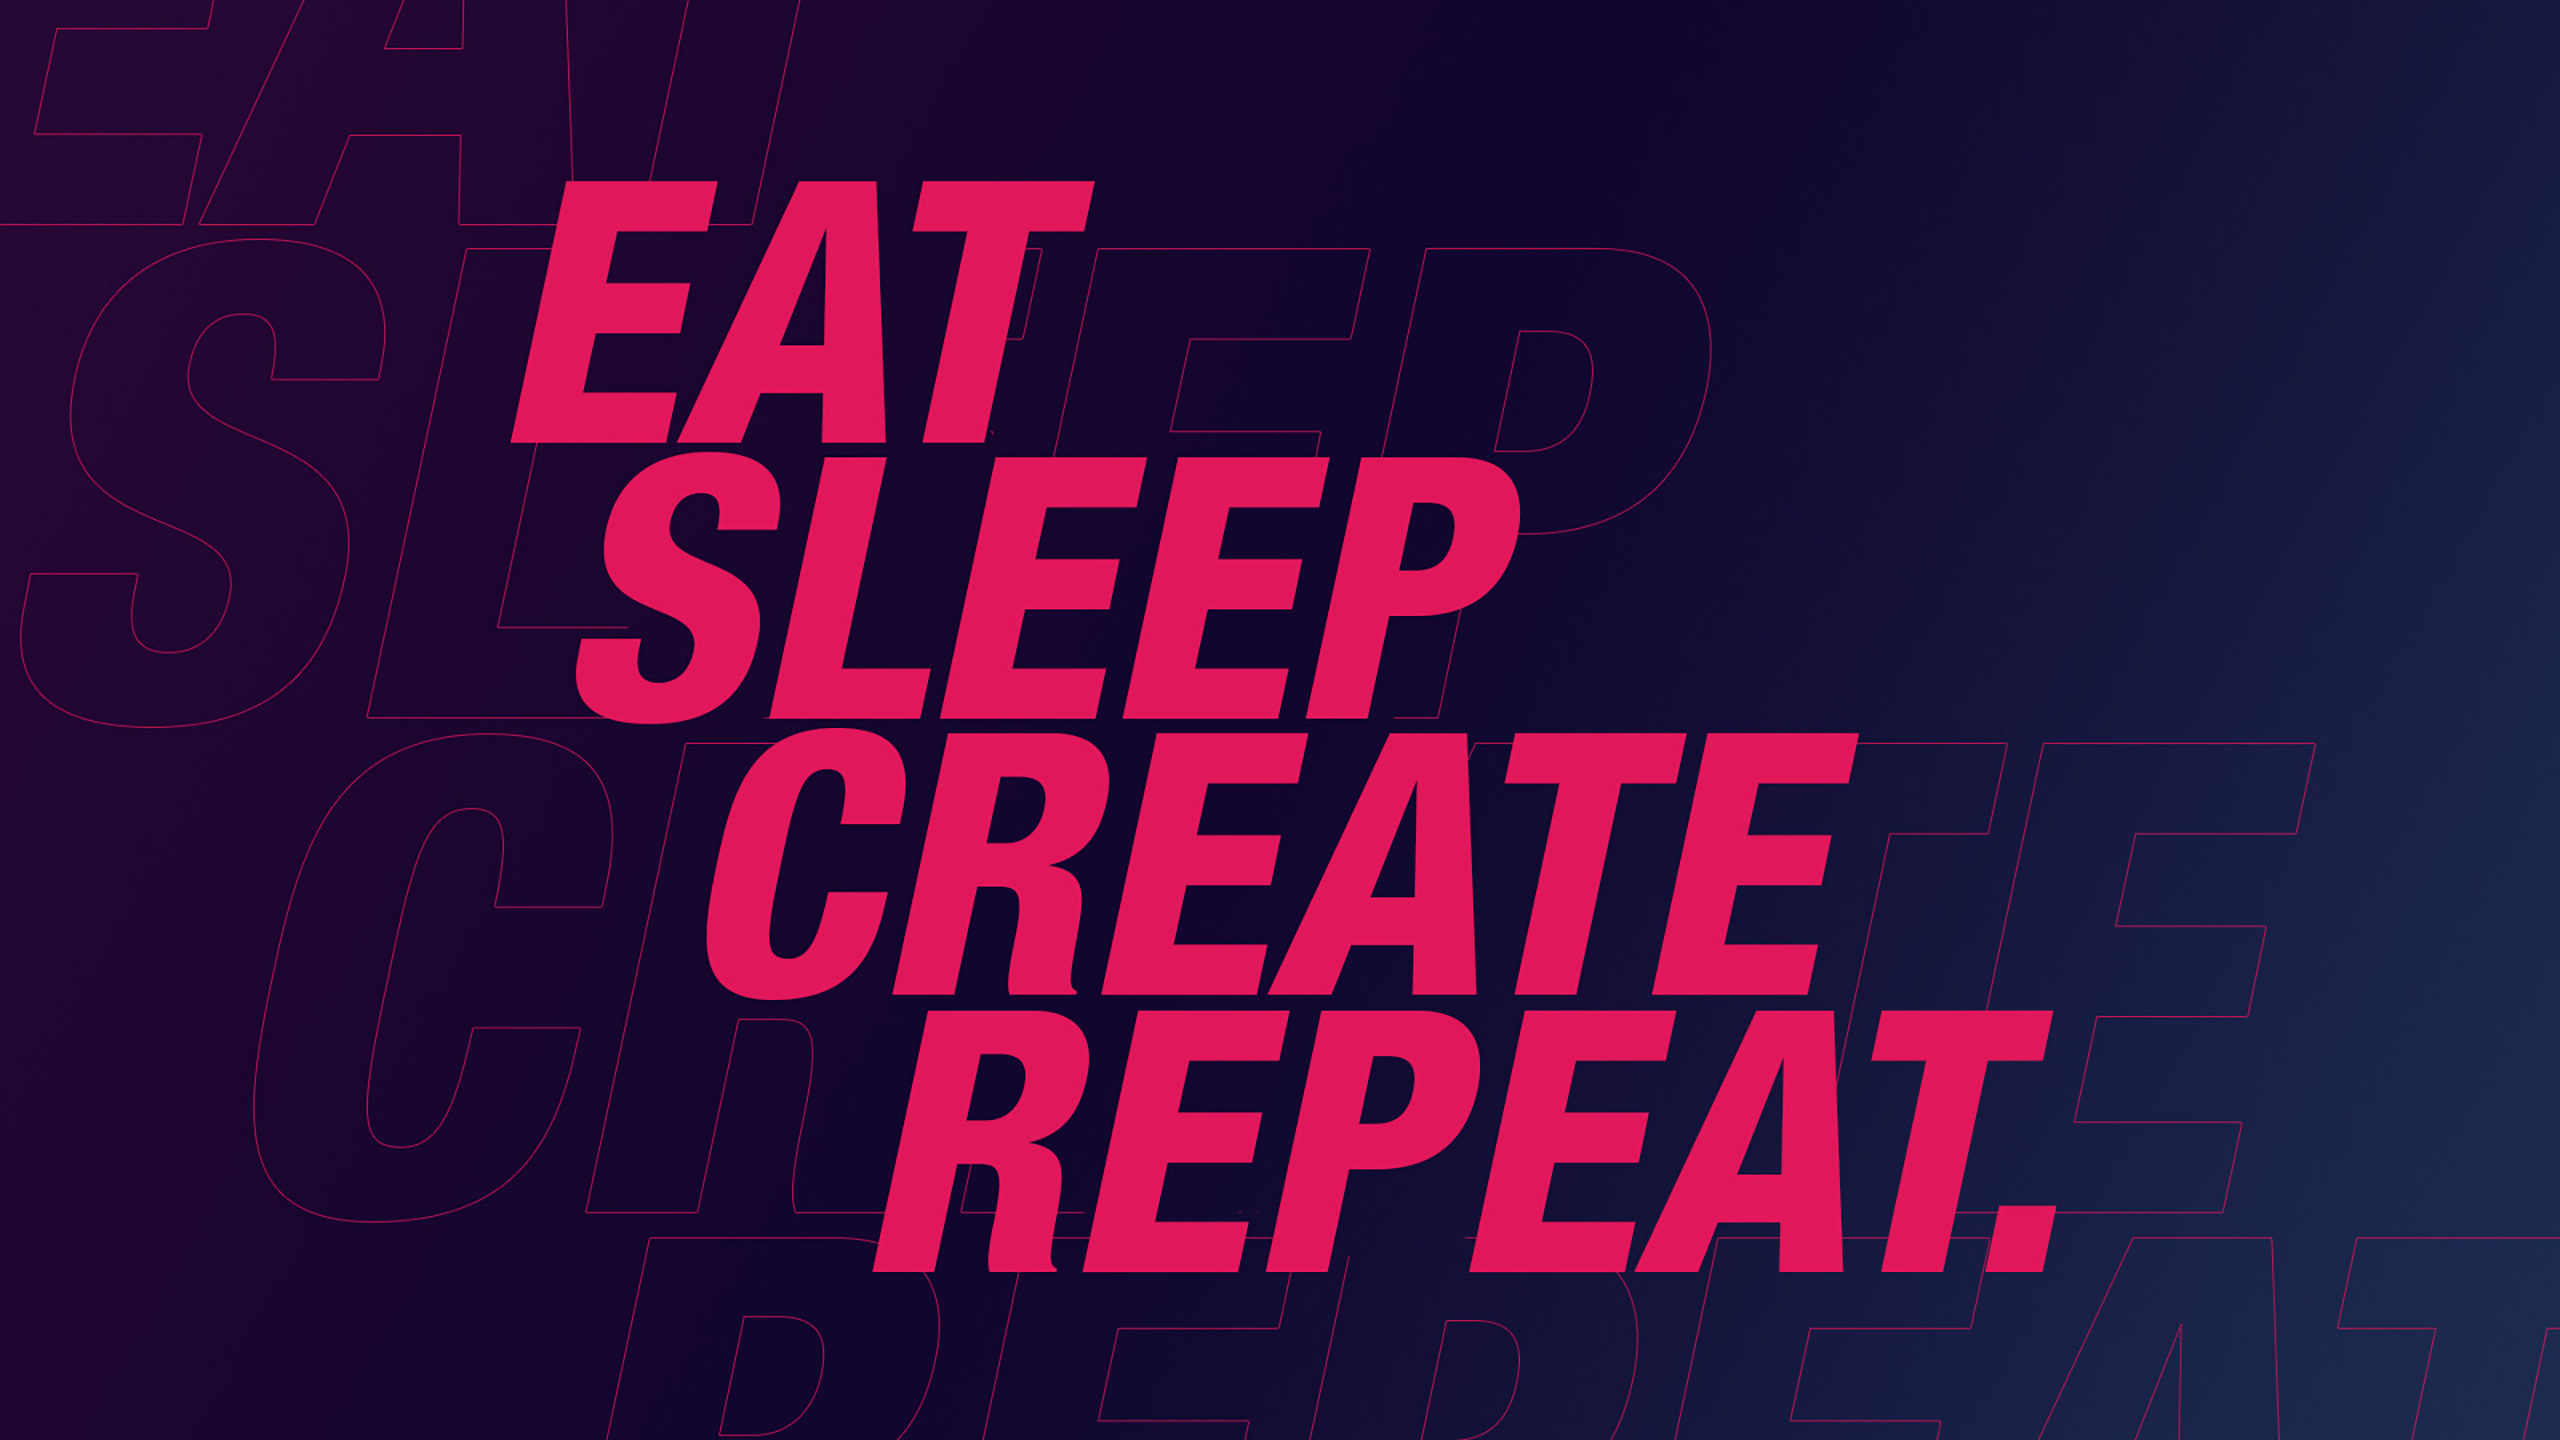 Eat 4k Wallpaper Sleep Create Repeat Inspirational Quotes Neon Pink Typography Quotes 1948